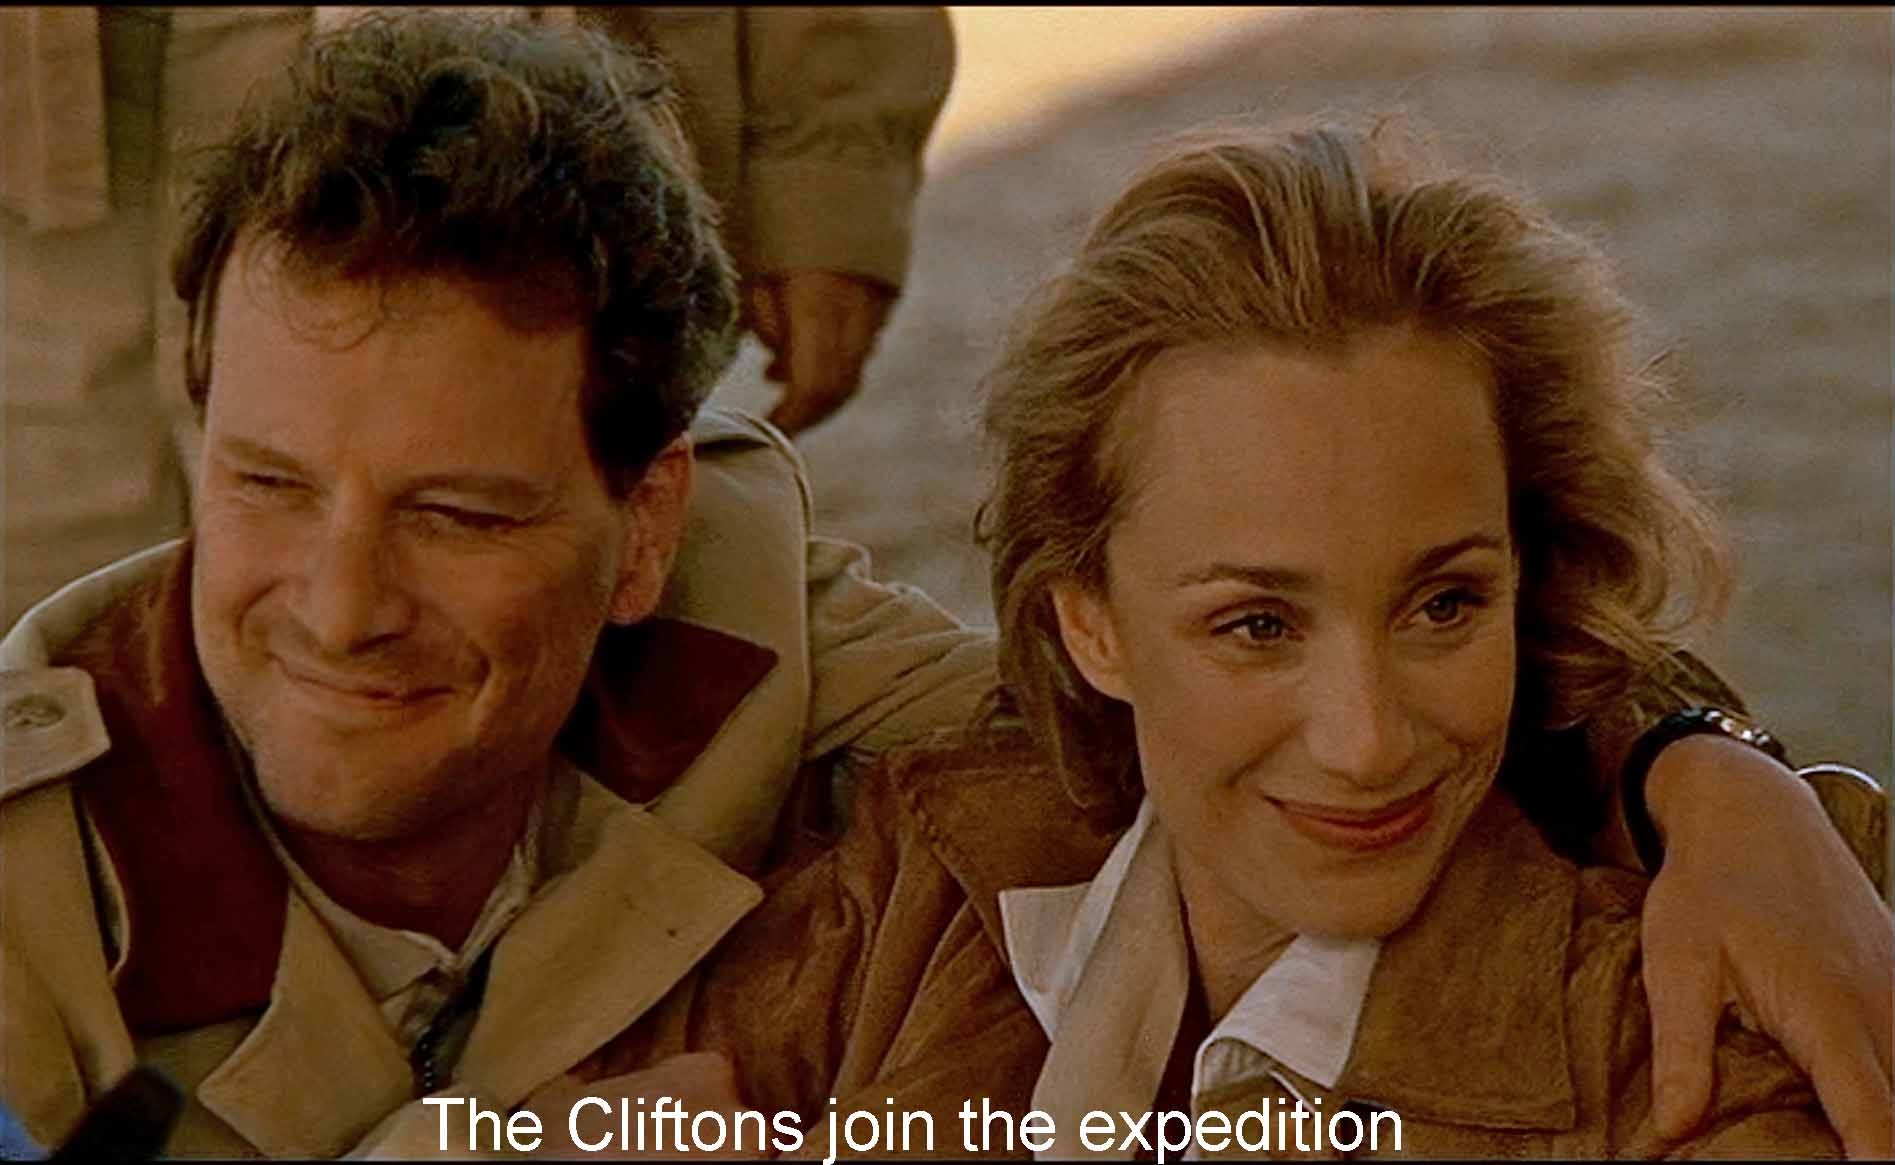 The Cliftons join the expedition